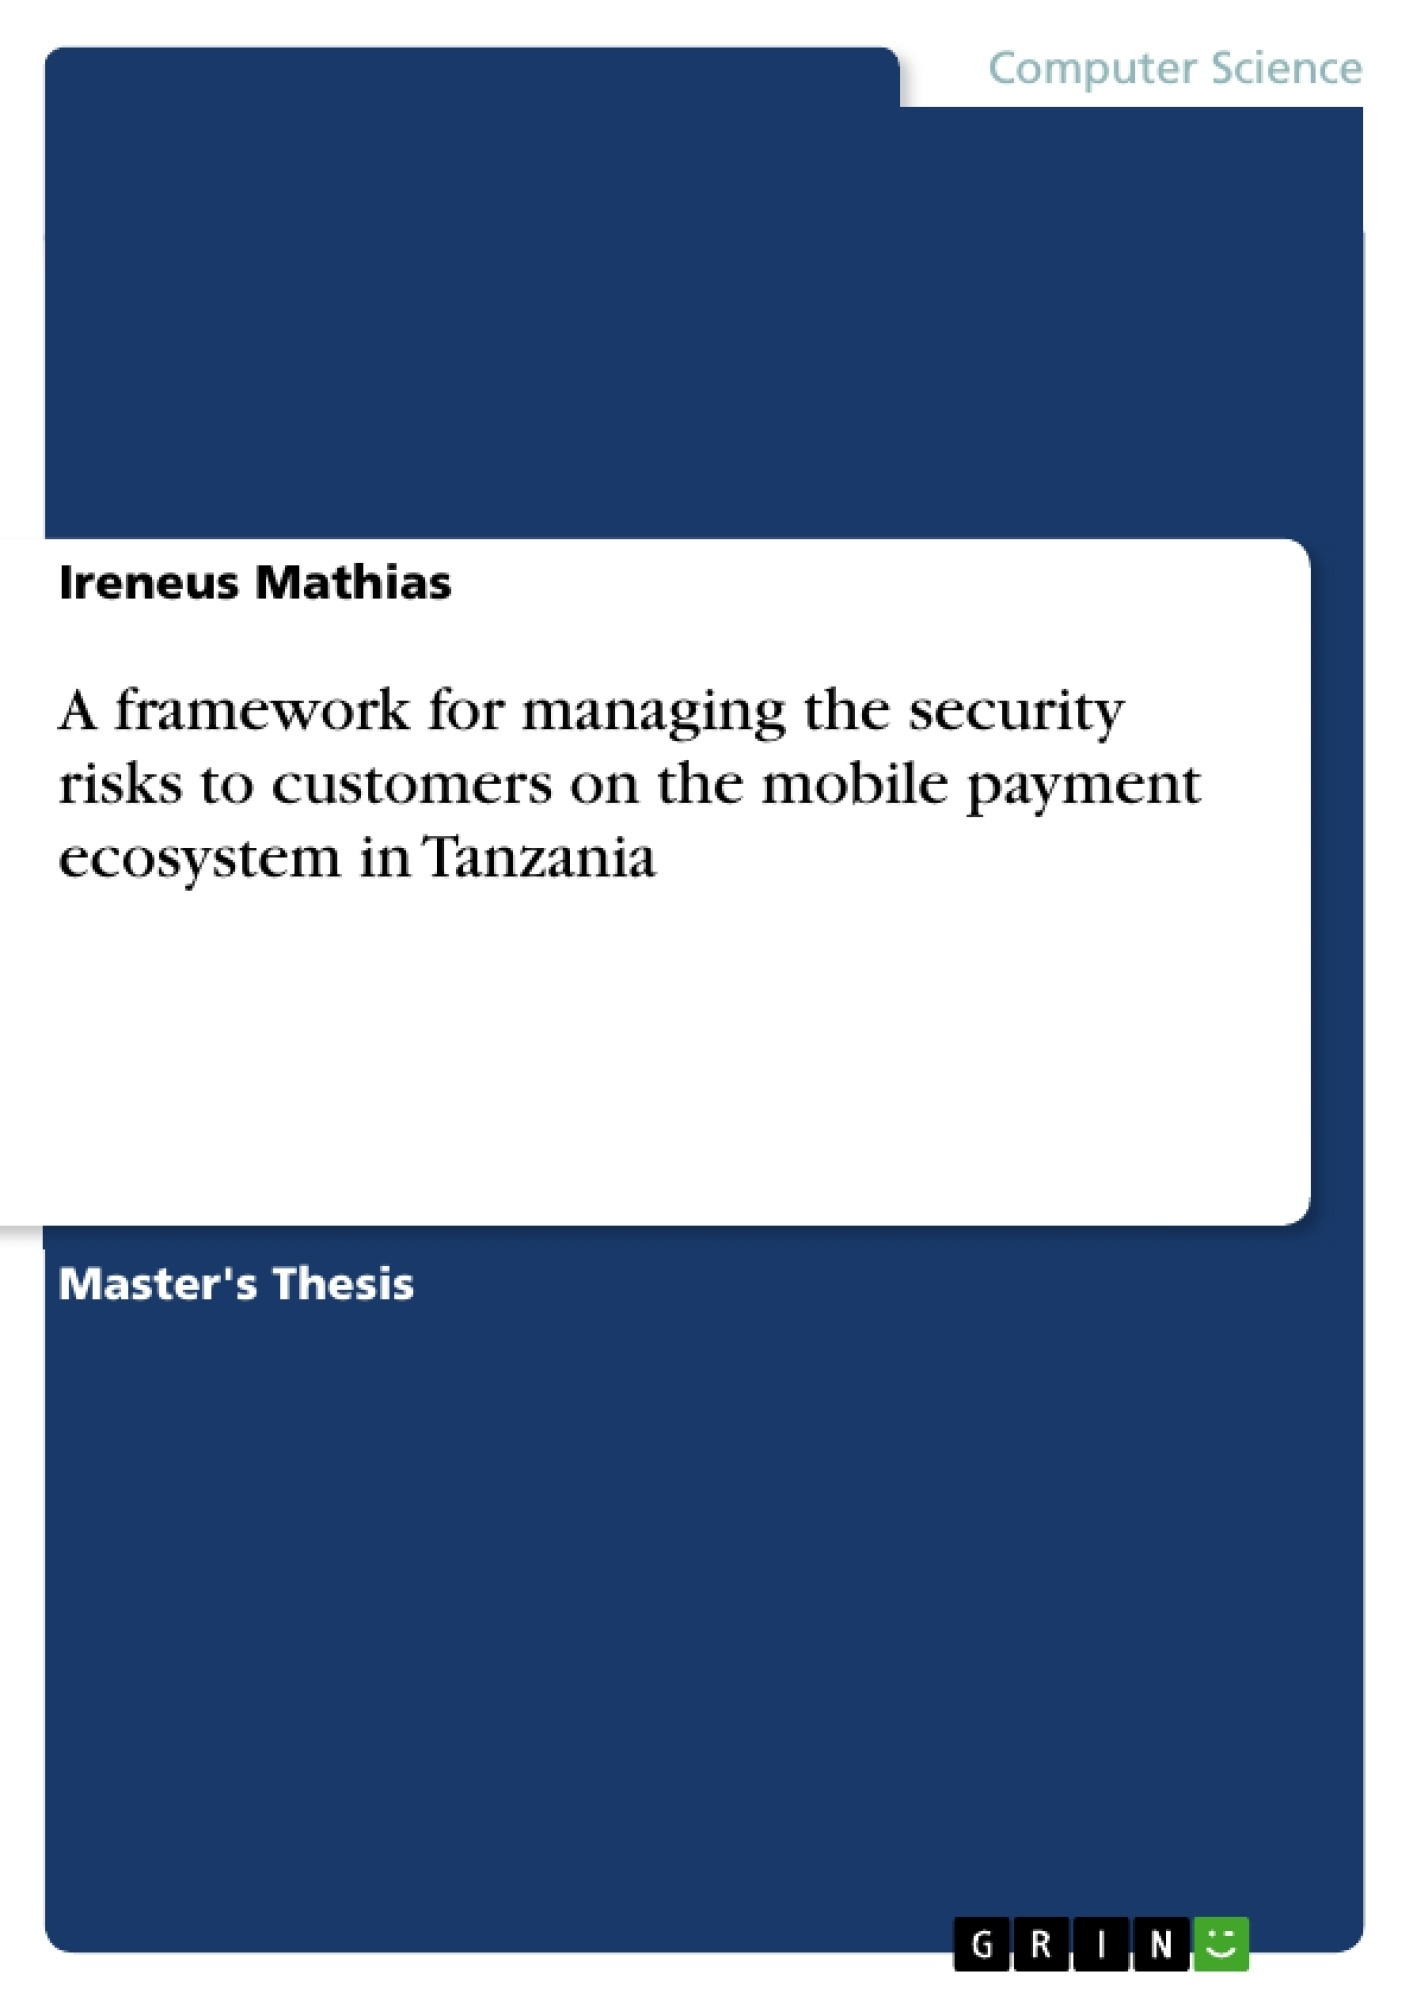 GRIN - A framework for managing the security risks to customers on the  mobile payment ecosystem in Tanzania